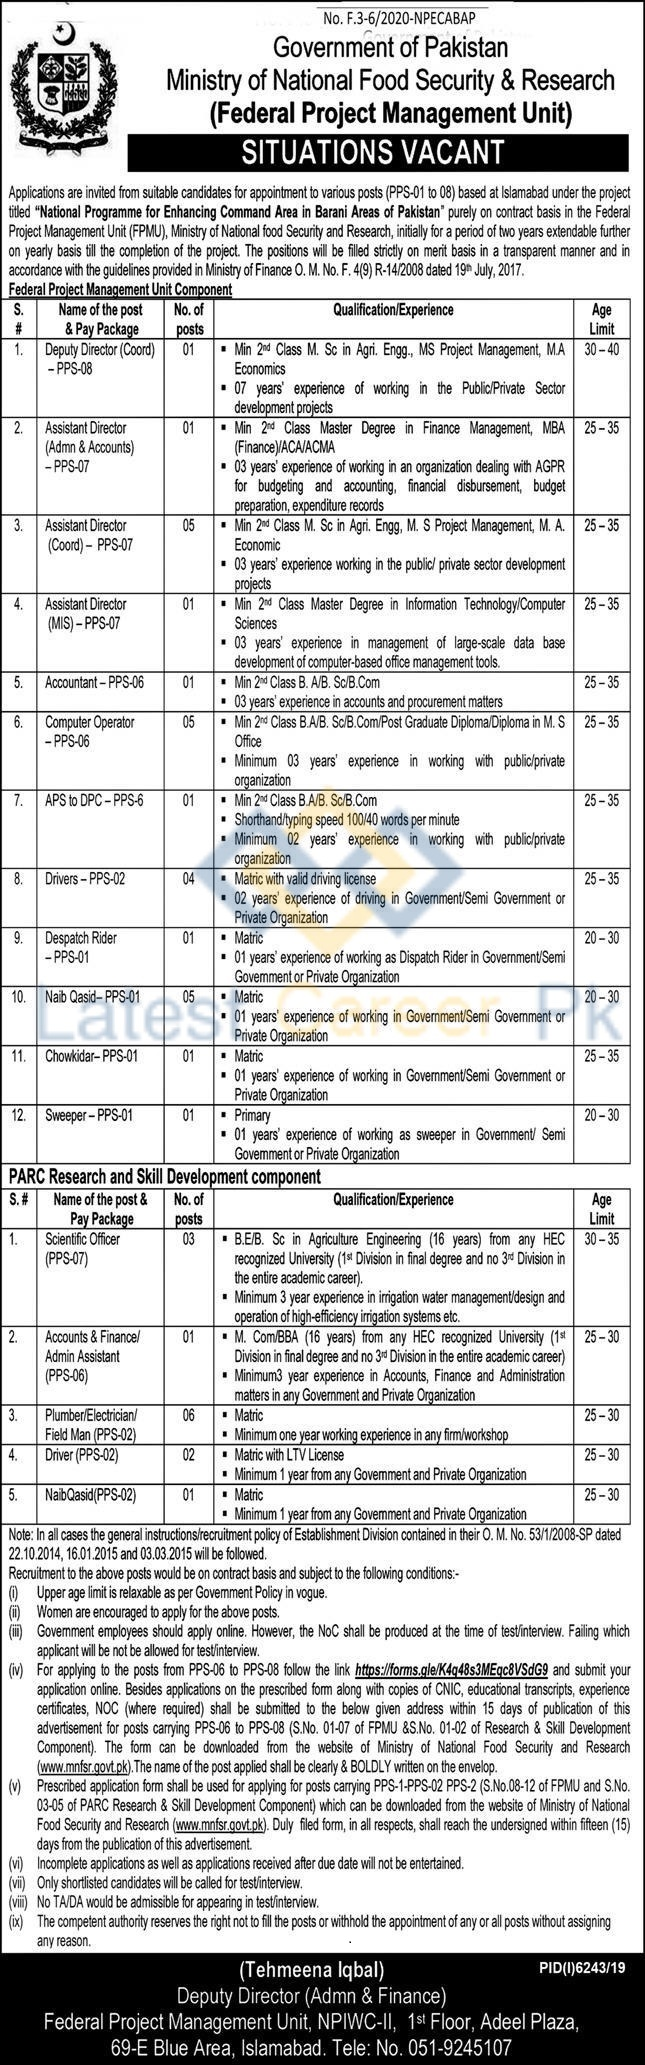 Ministry-of-National-Food-Security-and-Research-MNFSR-Islamabad-Jobs-20-May-2020